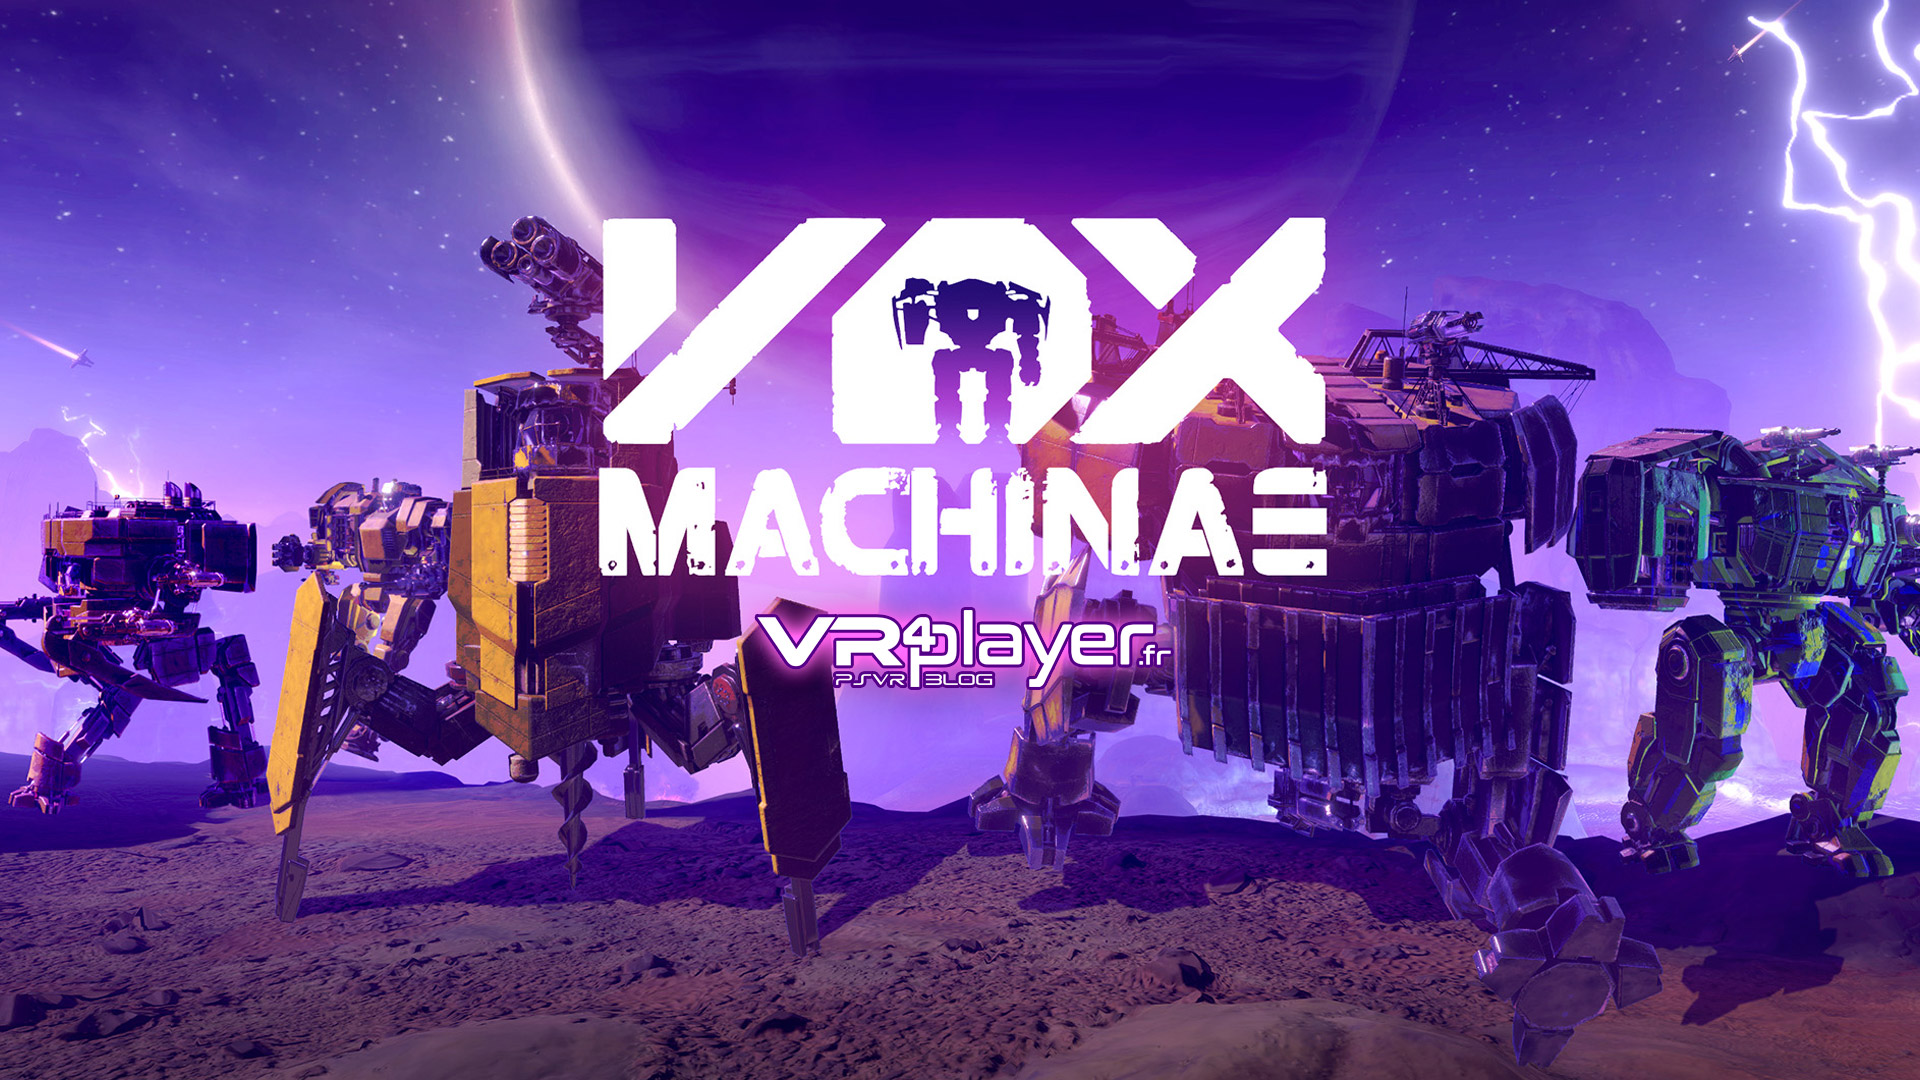 Vox Machinae - PlayStation VR PSVR VR4player